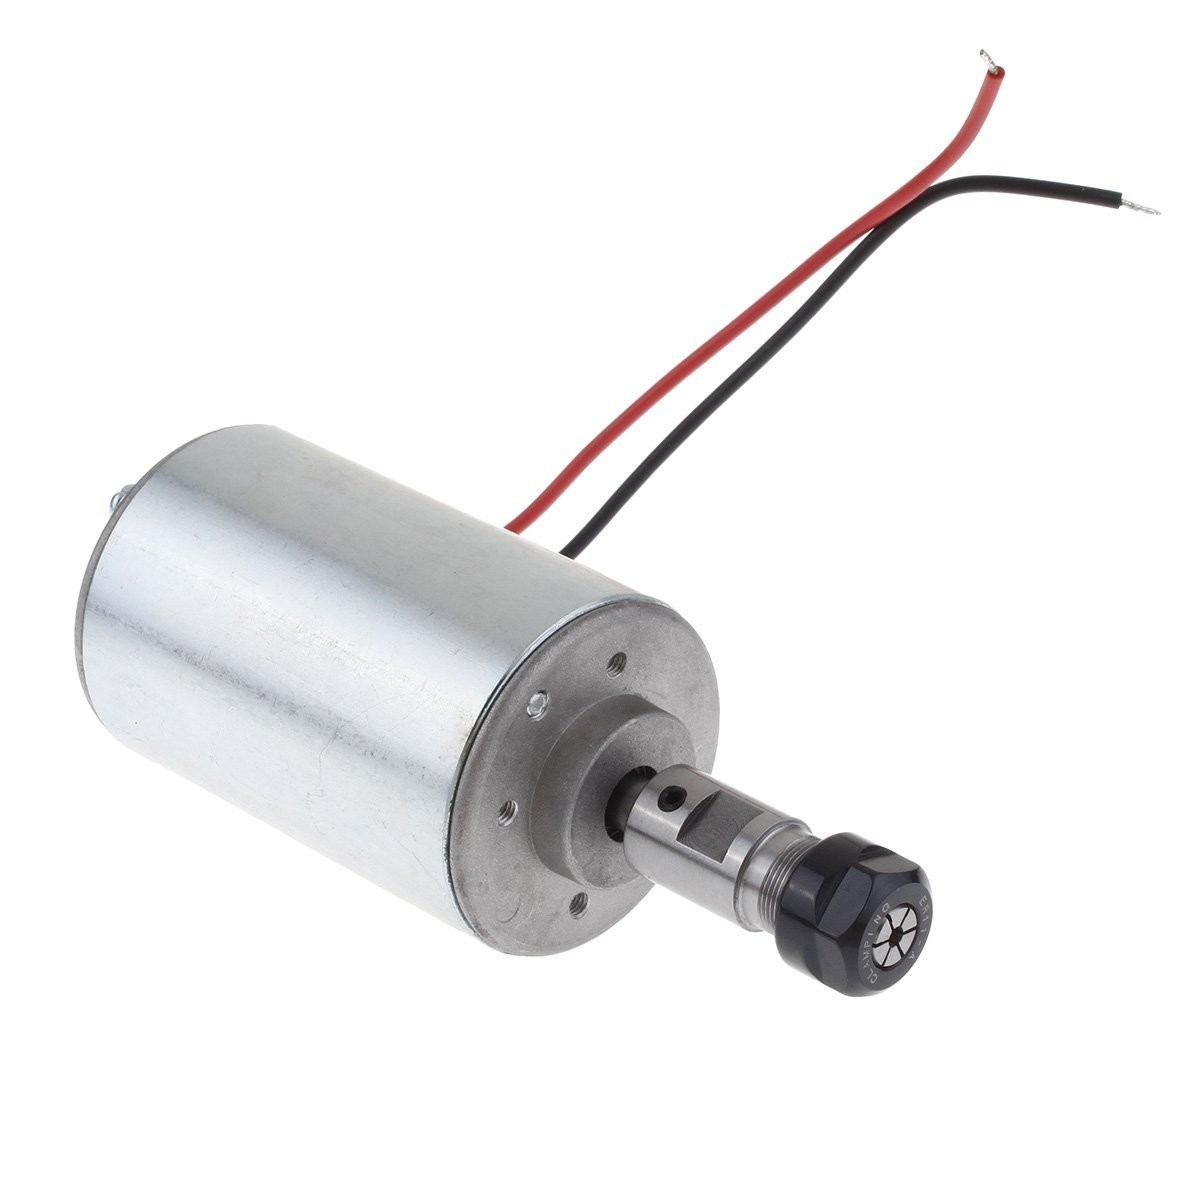 RioRand CNC DC12-48V ER11-200W A Spindle Motor for Router